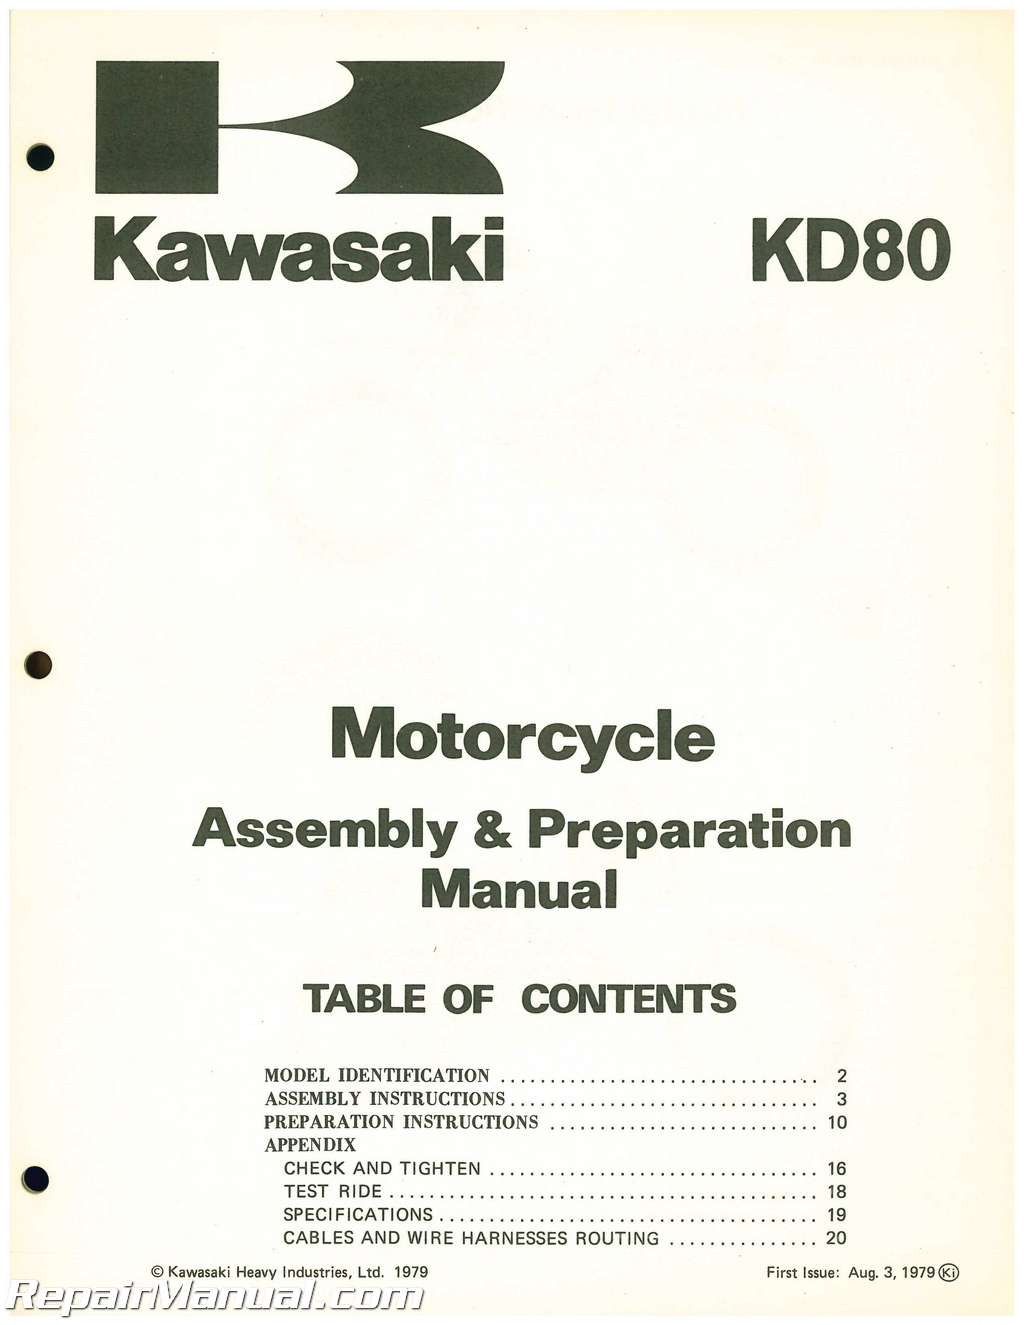 Used 1980 Kawasaki KD80 embly and Preparation Manual Kd Wiring Diagram on battery diagrams, transformer diagrams, switch diagrams, motor diagrams, series and parallel circuits diagrams, honda motorcycle repair diagrams, led circuit diagrams, internet of things diagrams, electrical diagrams, electronic circuit diagrams, pinout diagrams, friendship bracelet diagrams, troubleshooting diagrams, hvac diagrams, engine diagrams, smart car diagrams, sincgars radio configurations diagrams, lighting diagrams, gmc fuse box diagrams,